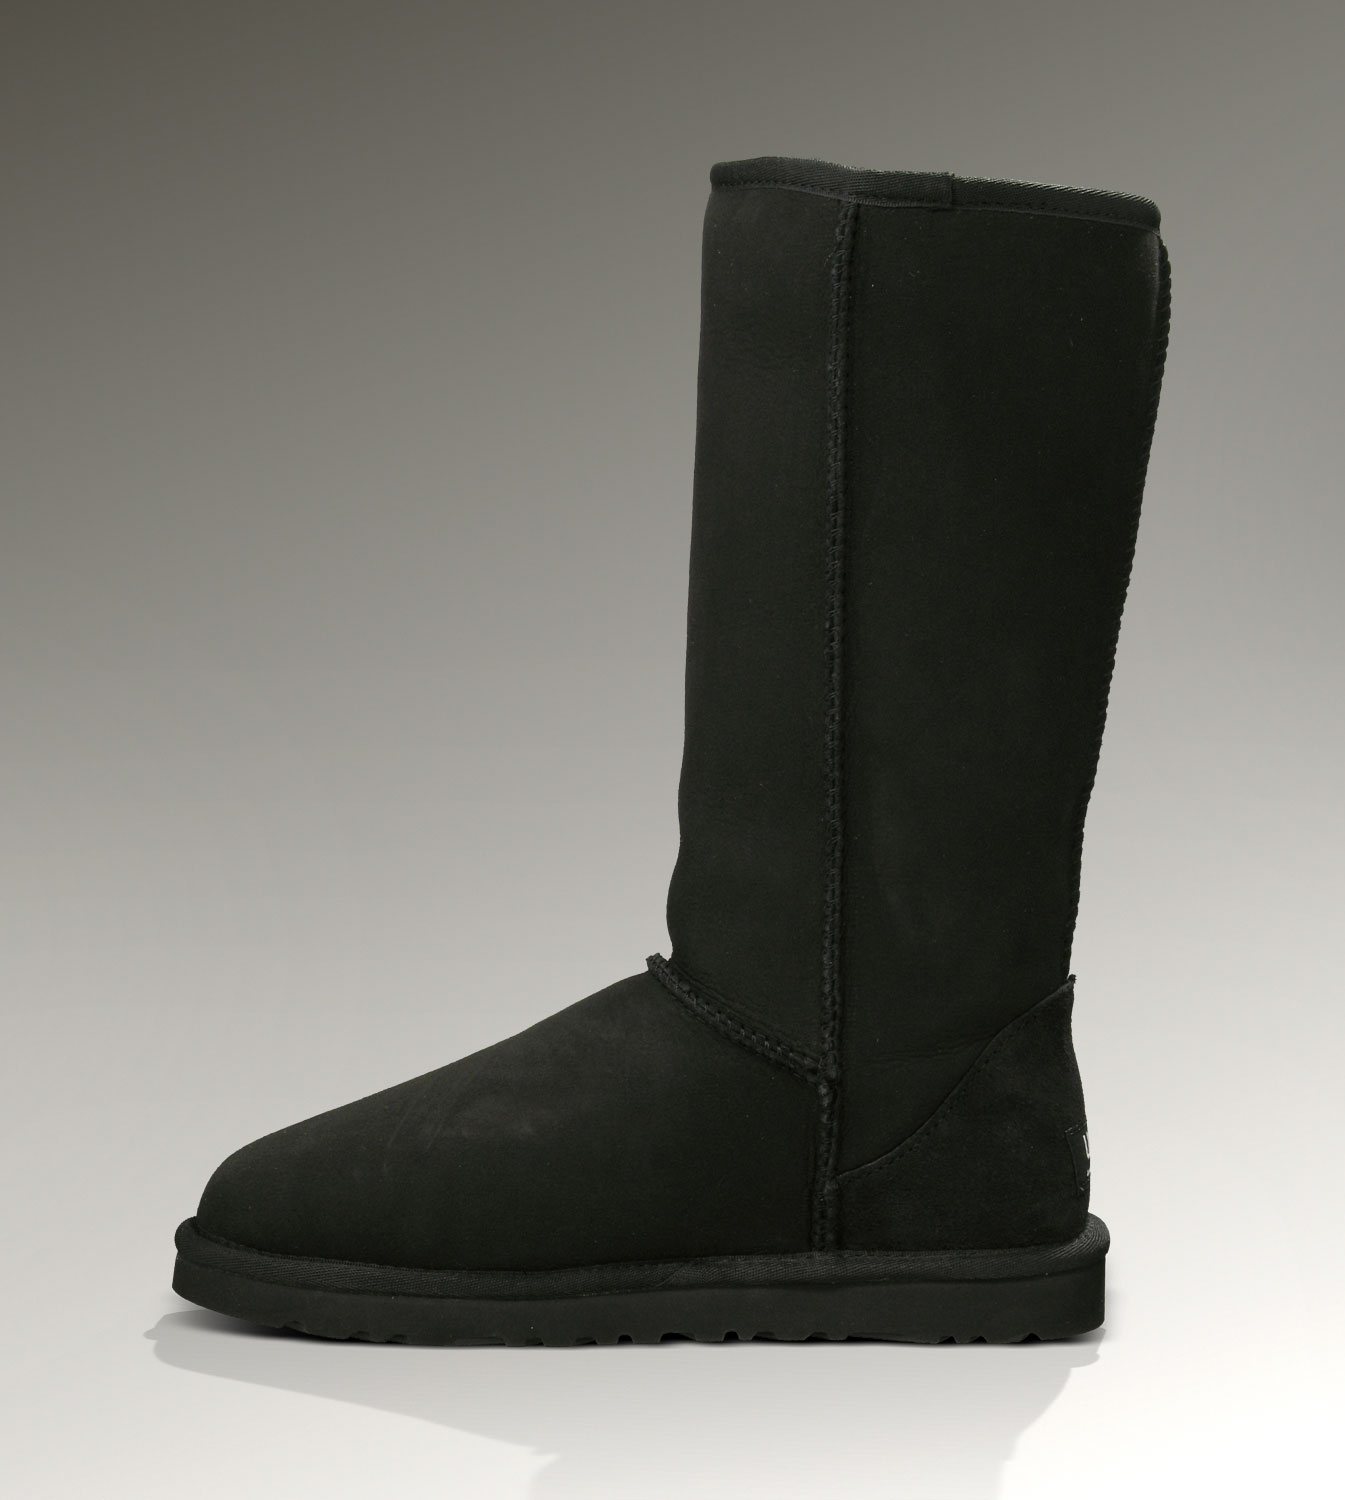 UGG Classic Tall 5815 Black Boots